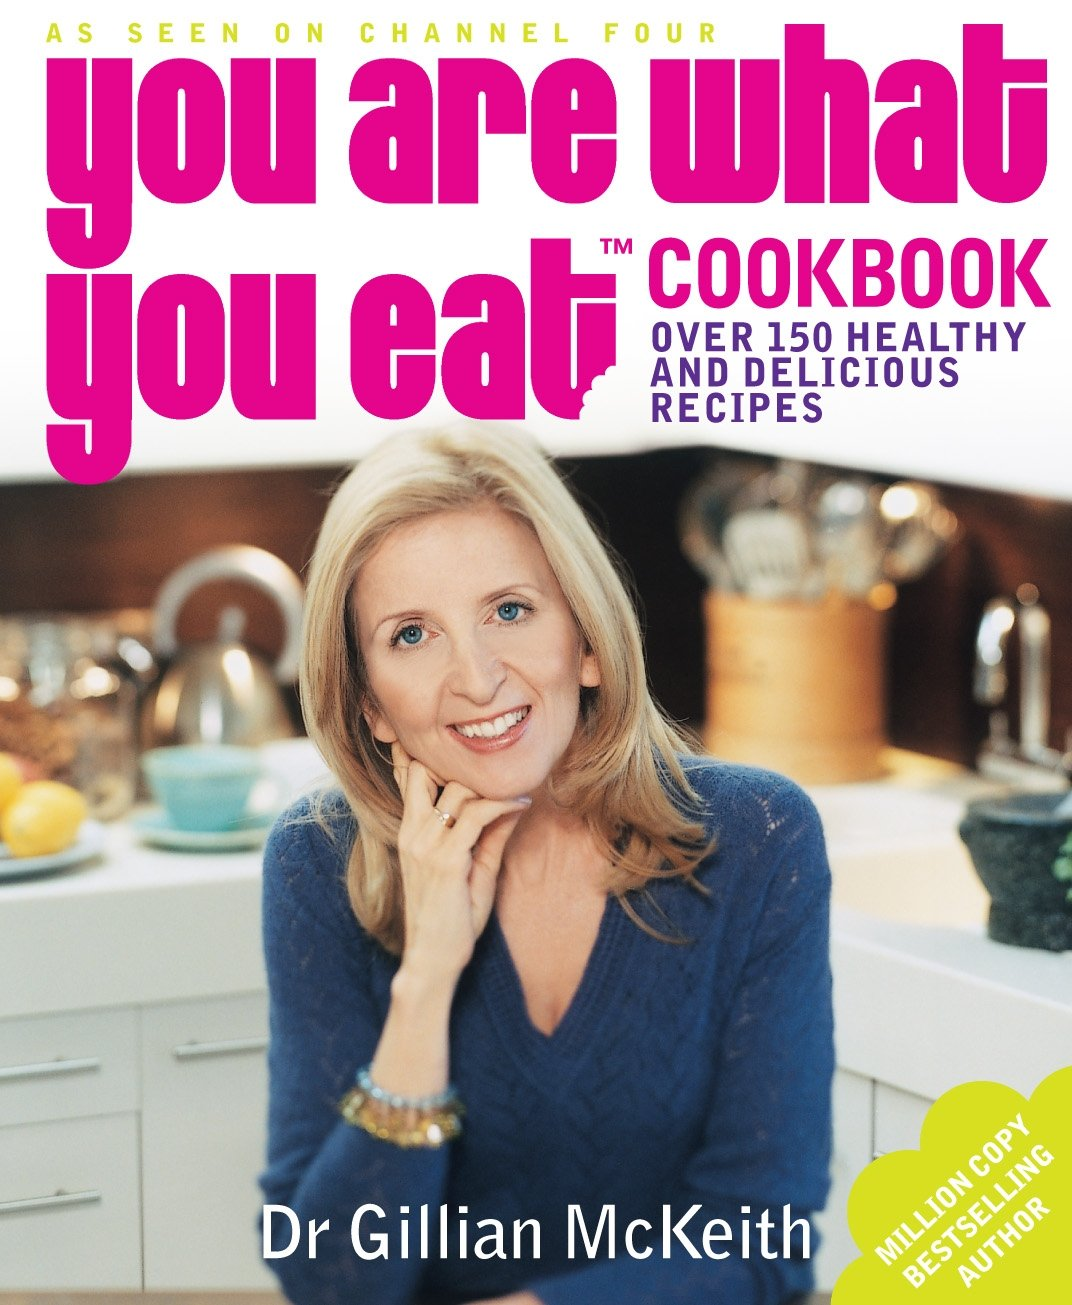 You Are What You Eat Cookbook: Over 150 Easy And Delicious Recipes To Inspire The Healthy New by Gillian Mckeith